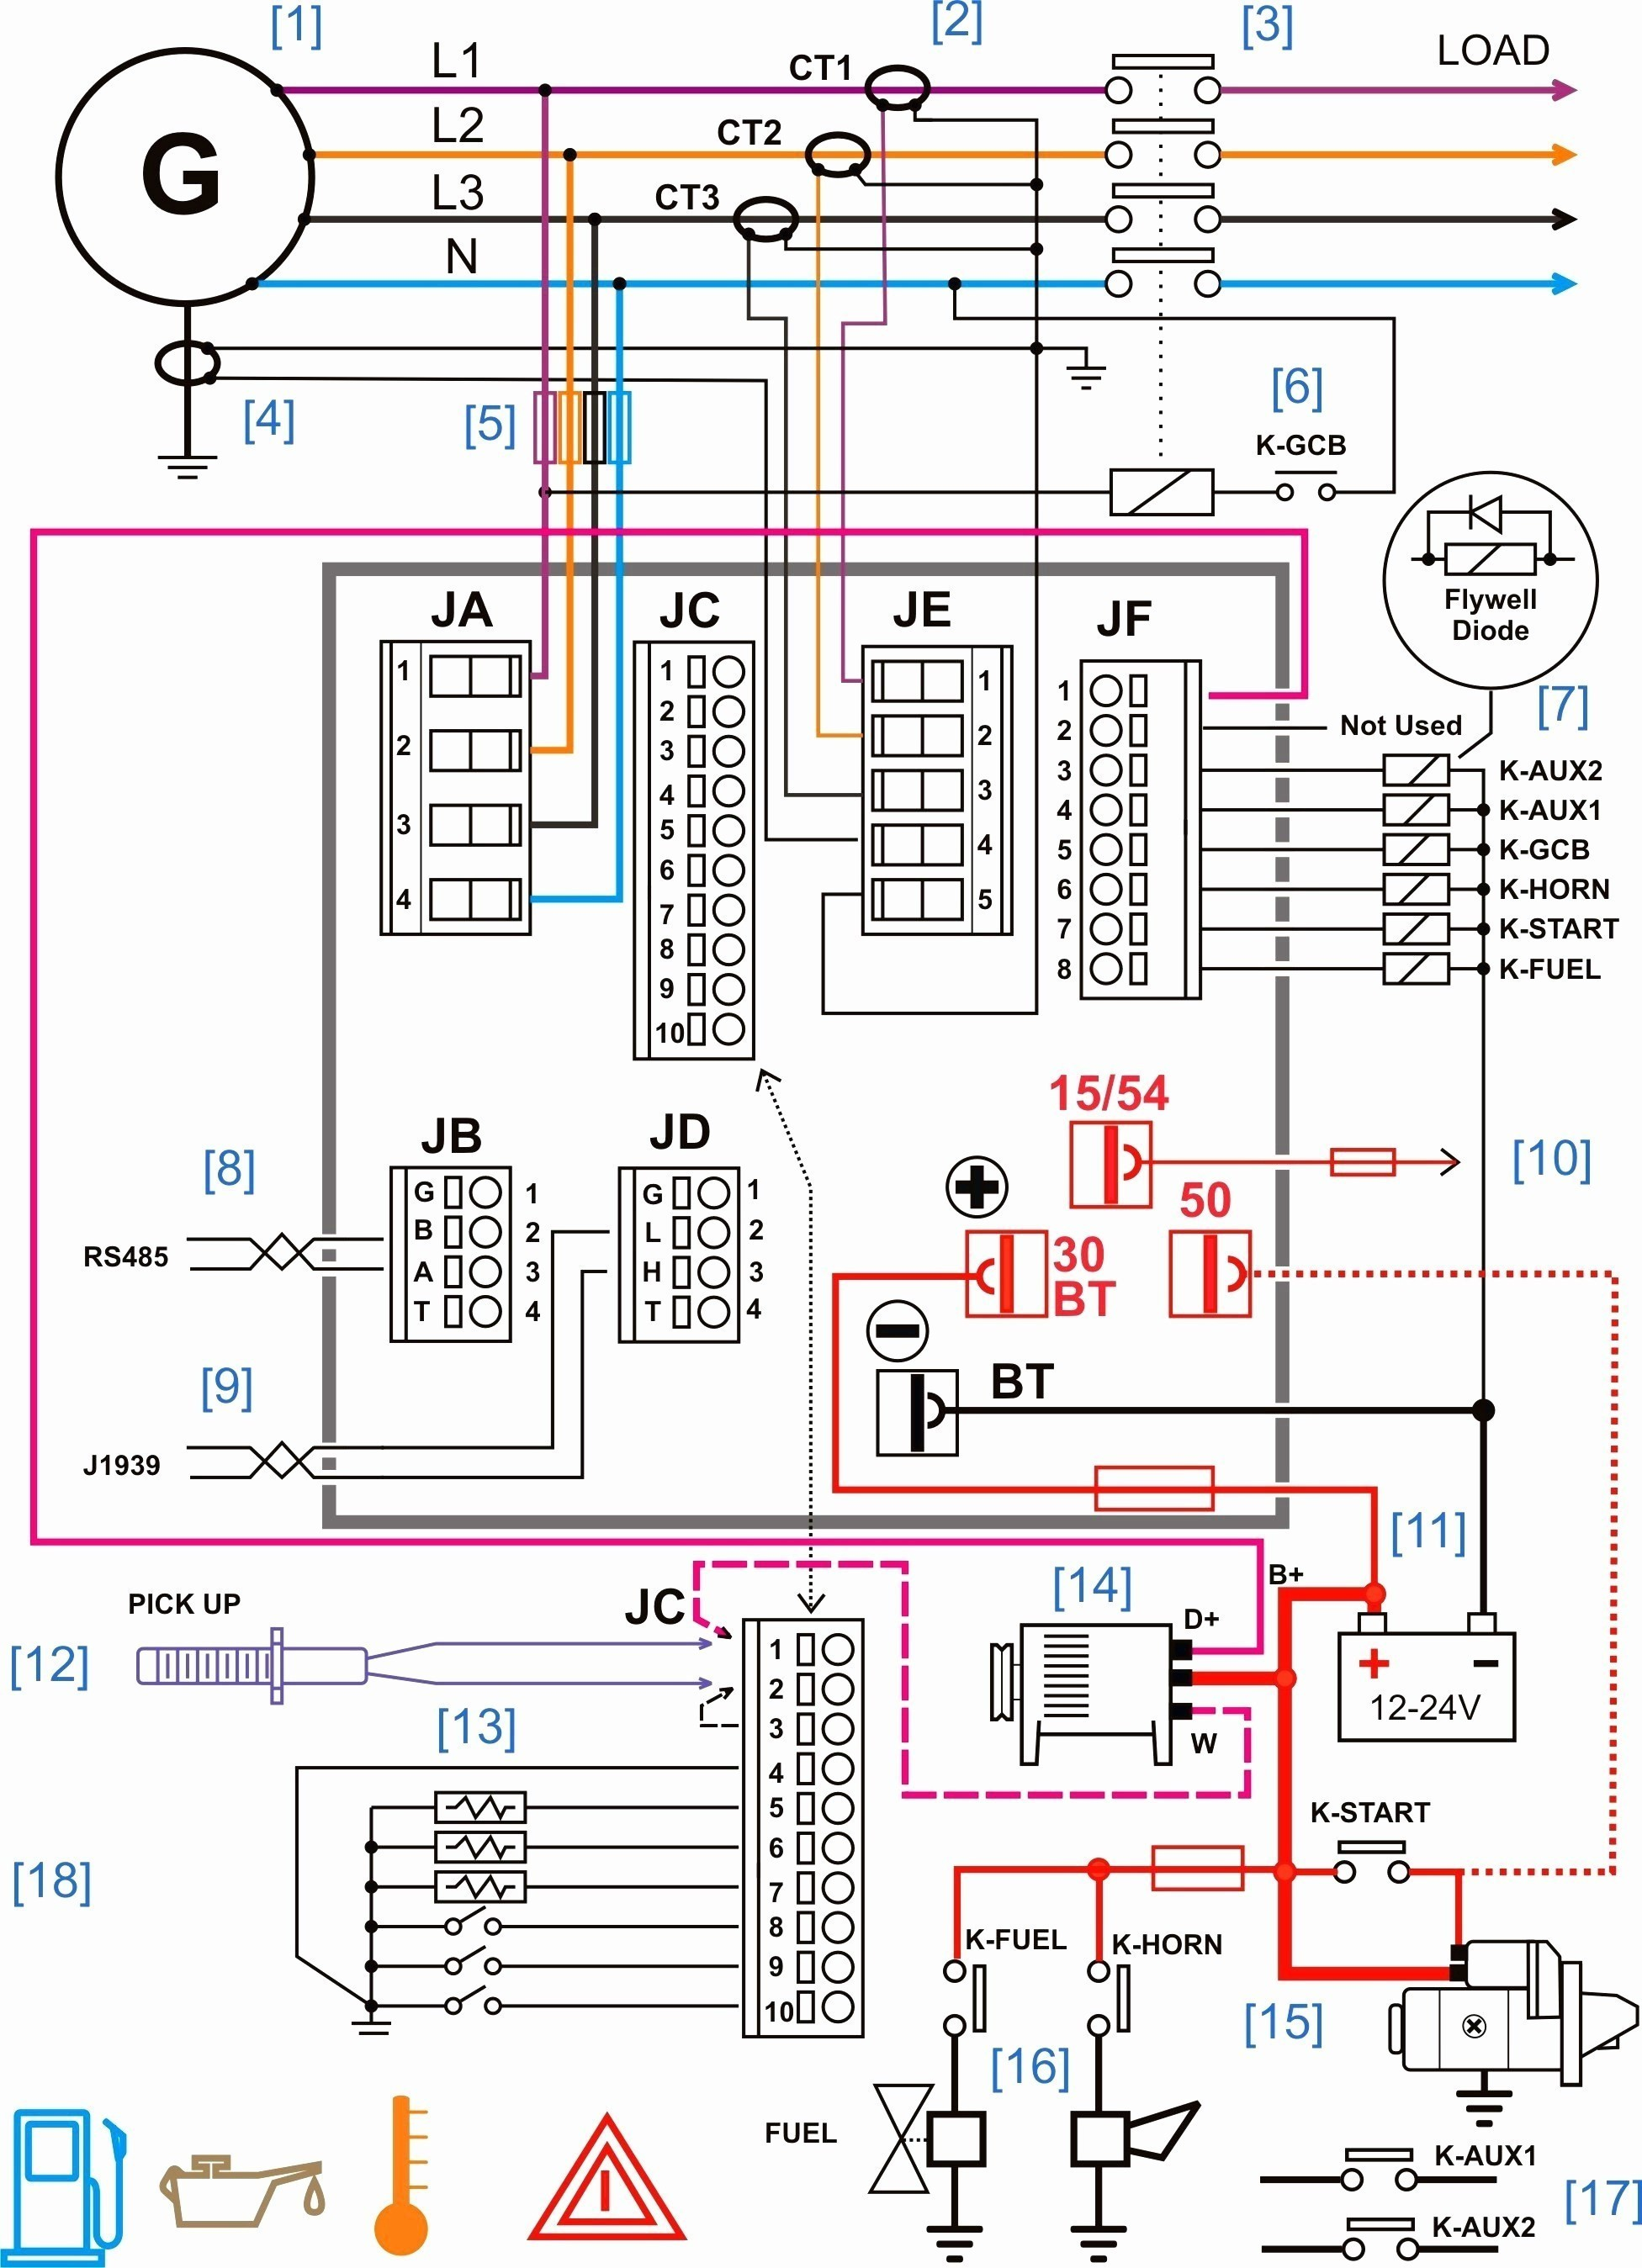 Car Audio Connection Diagram Wiring Diagram Book Best Wiring Harness Diagram Book Car Stereo Of Car Audio Connection Diagram